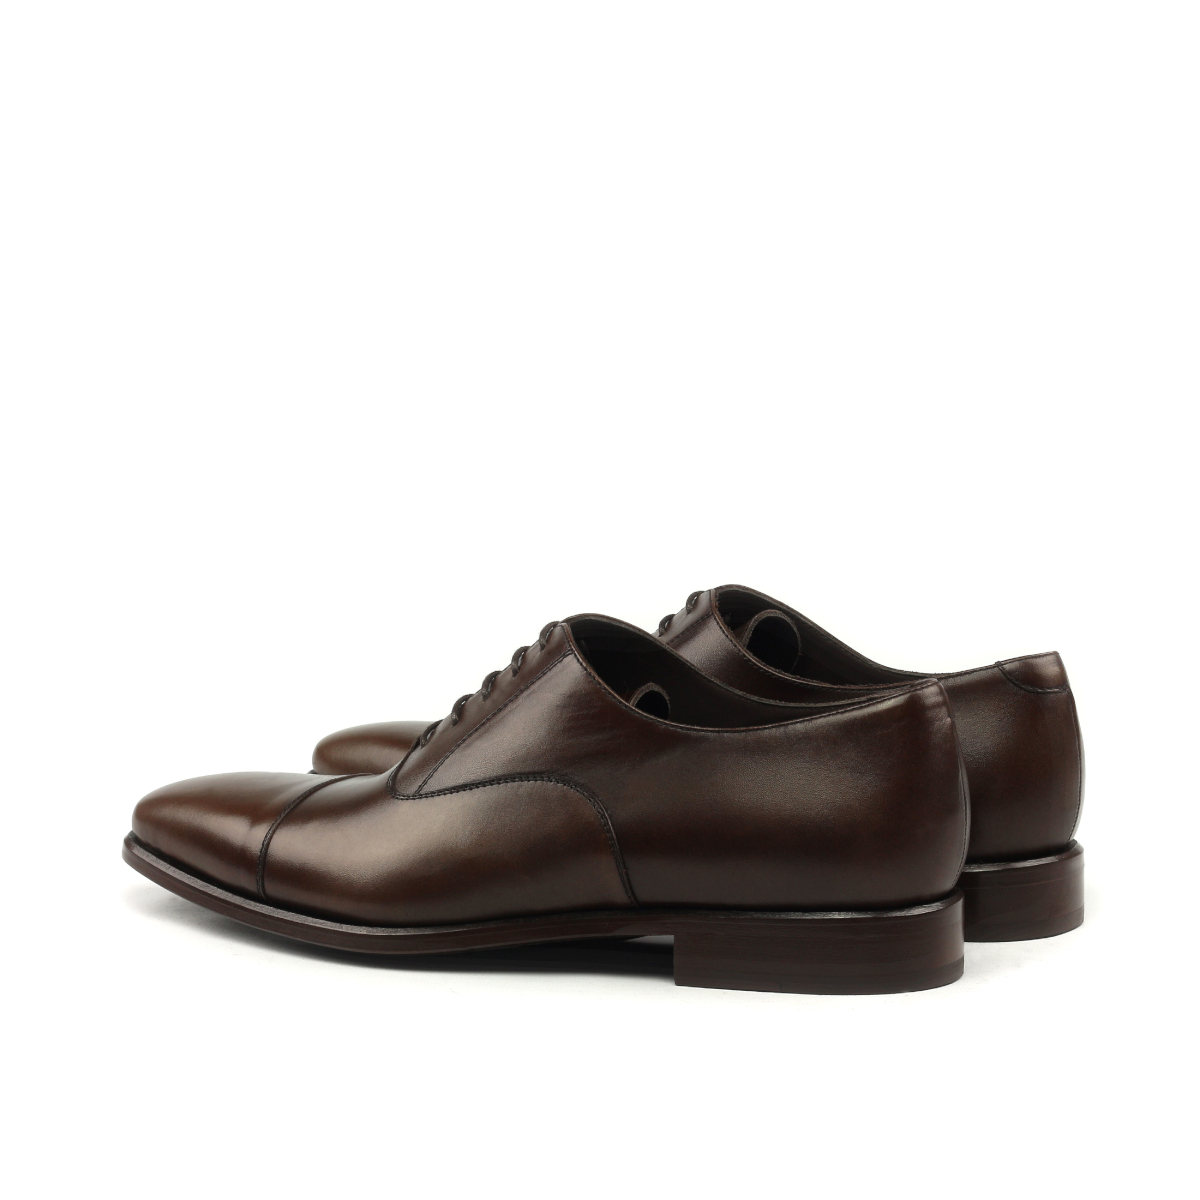 Oxford cap toe en boxcalf marrón